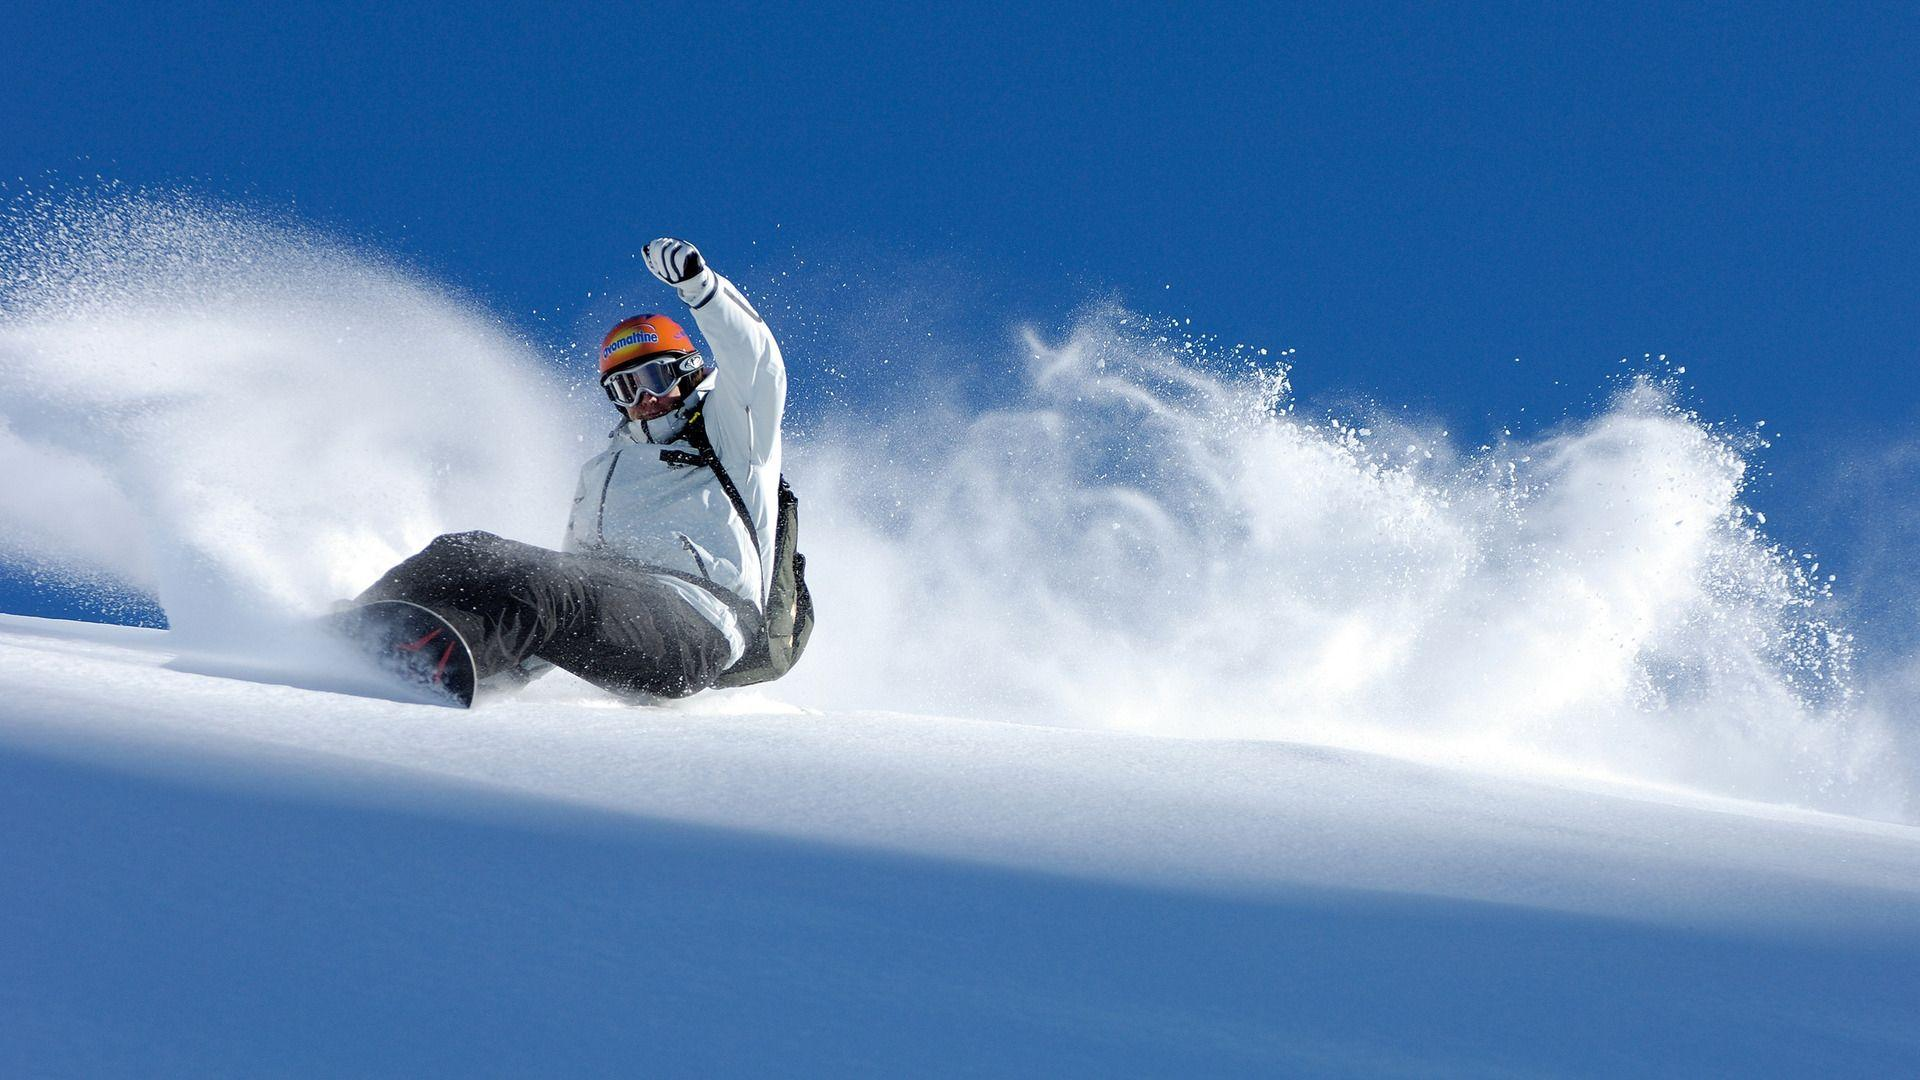 snowboard outdoor wallpaper desktop - photo #15